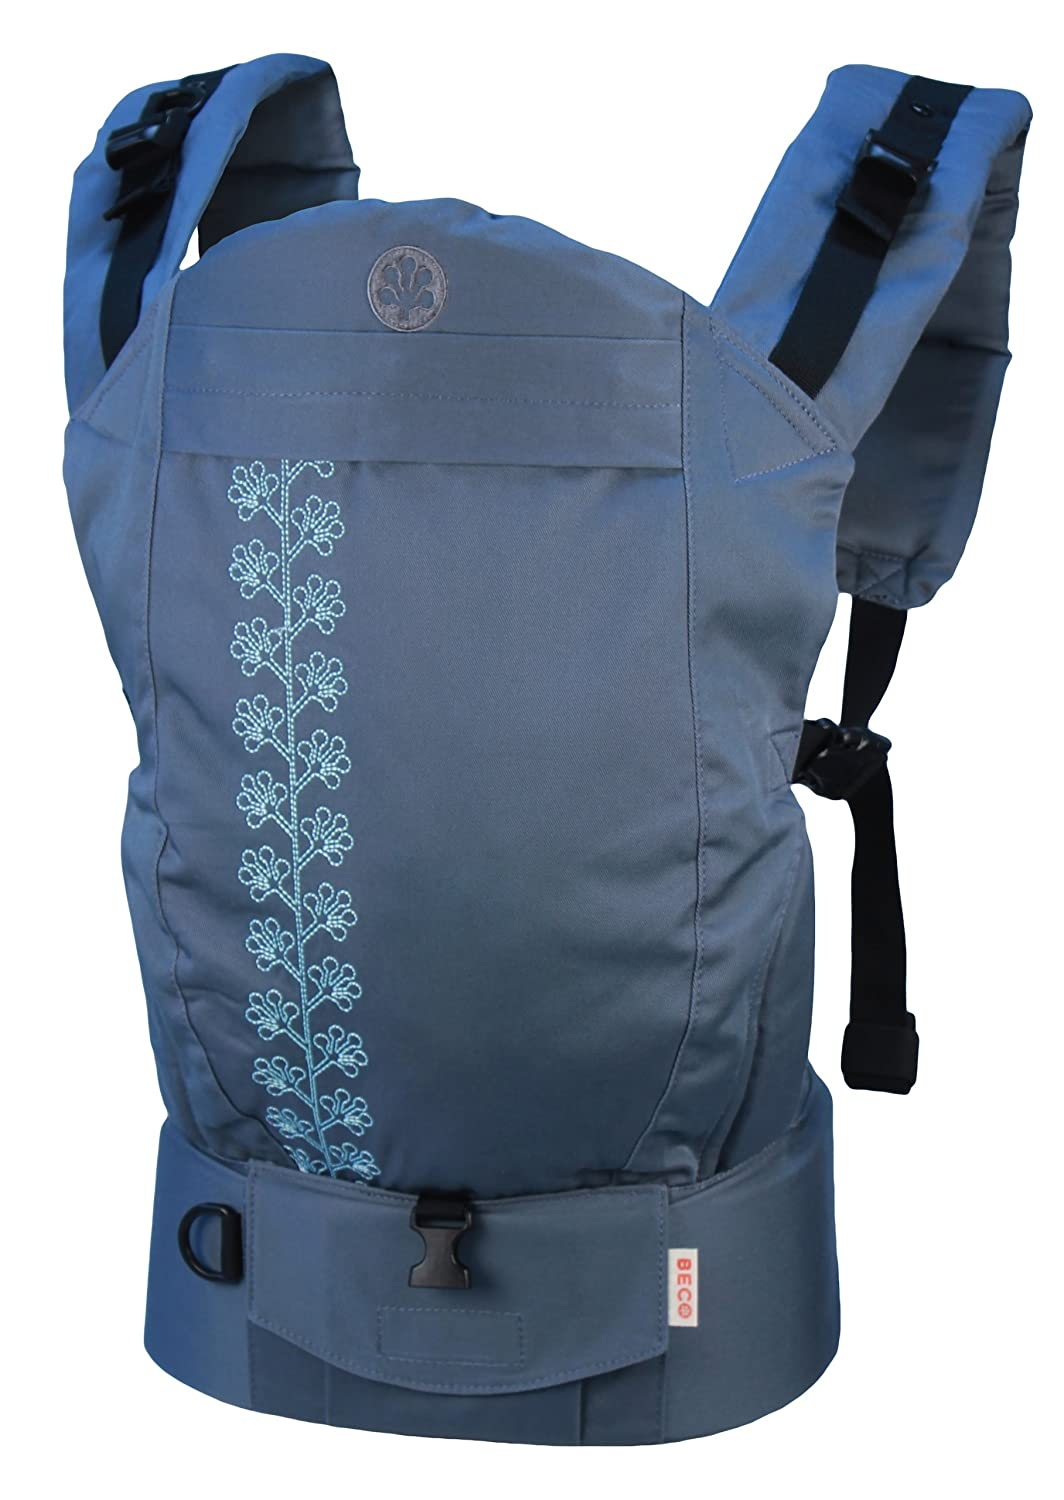 Beco Soleil Baby Carrier – Enzo